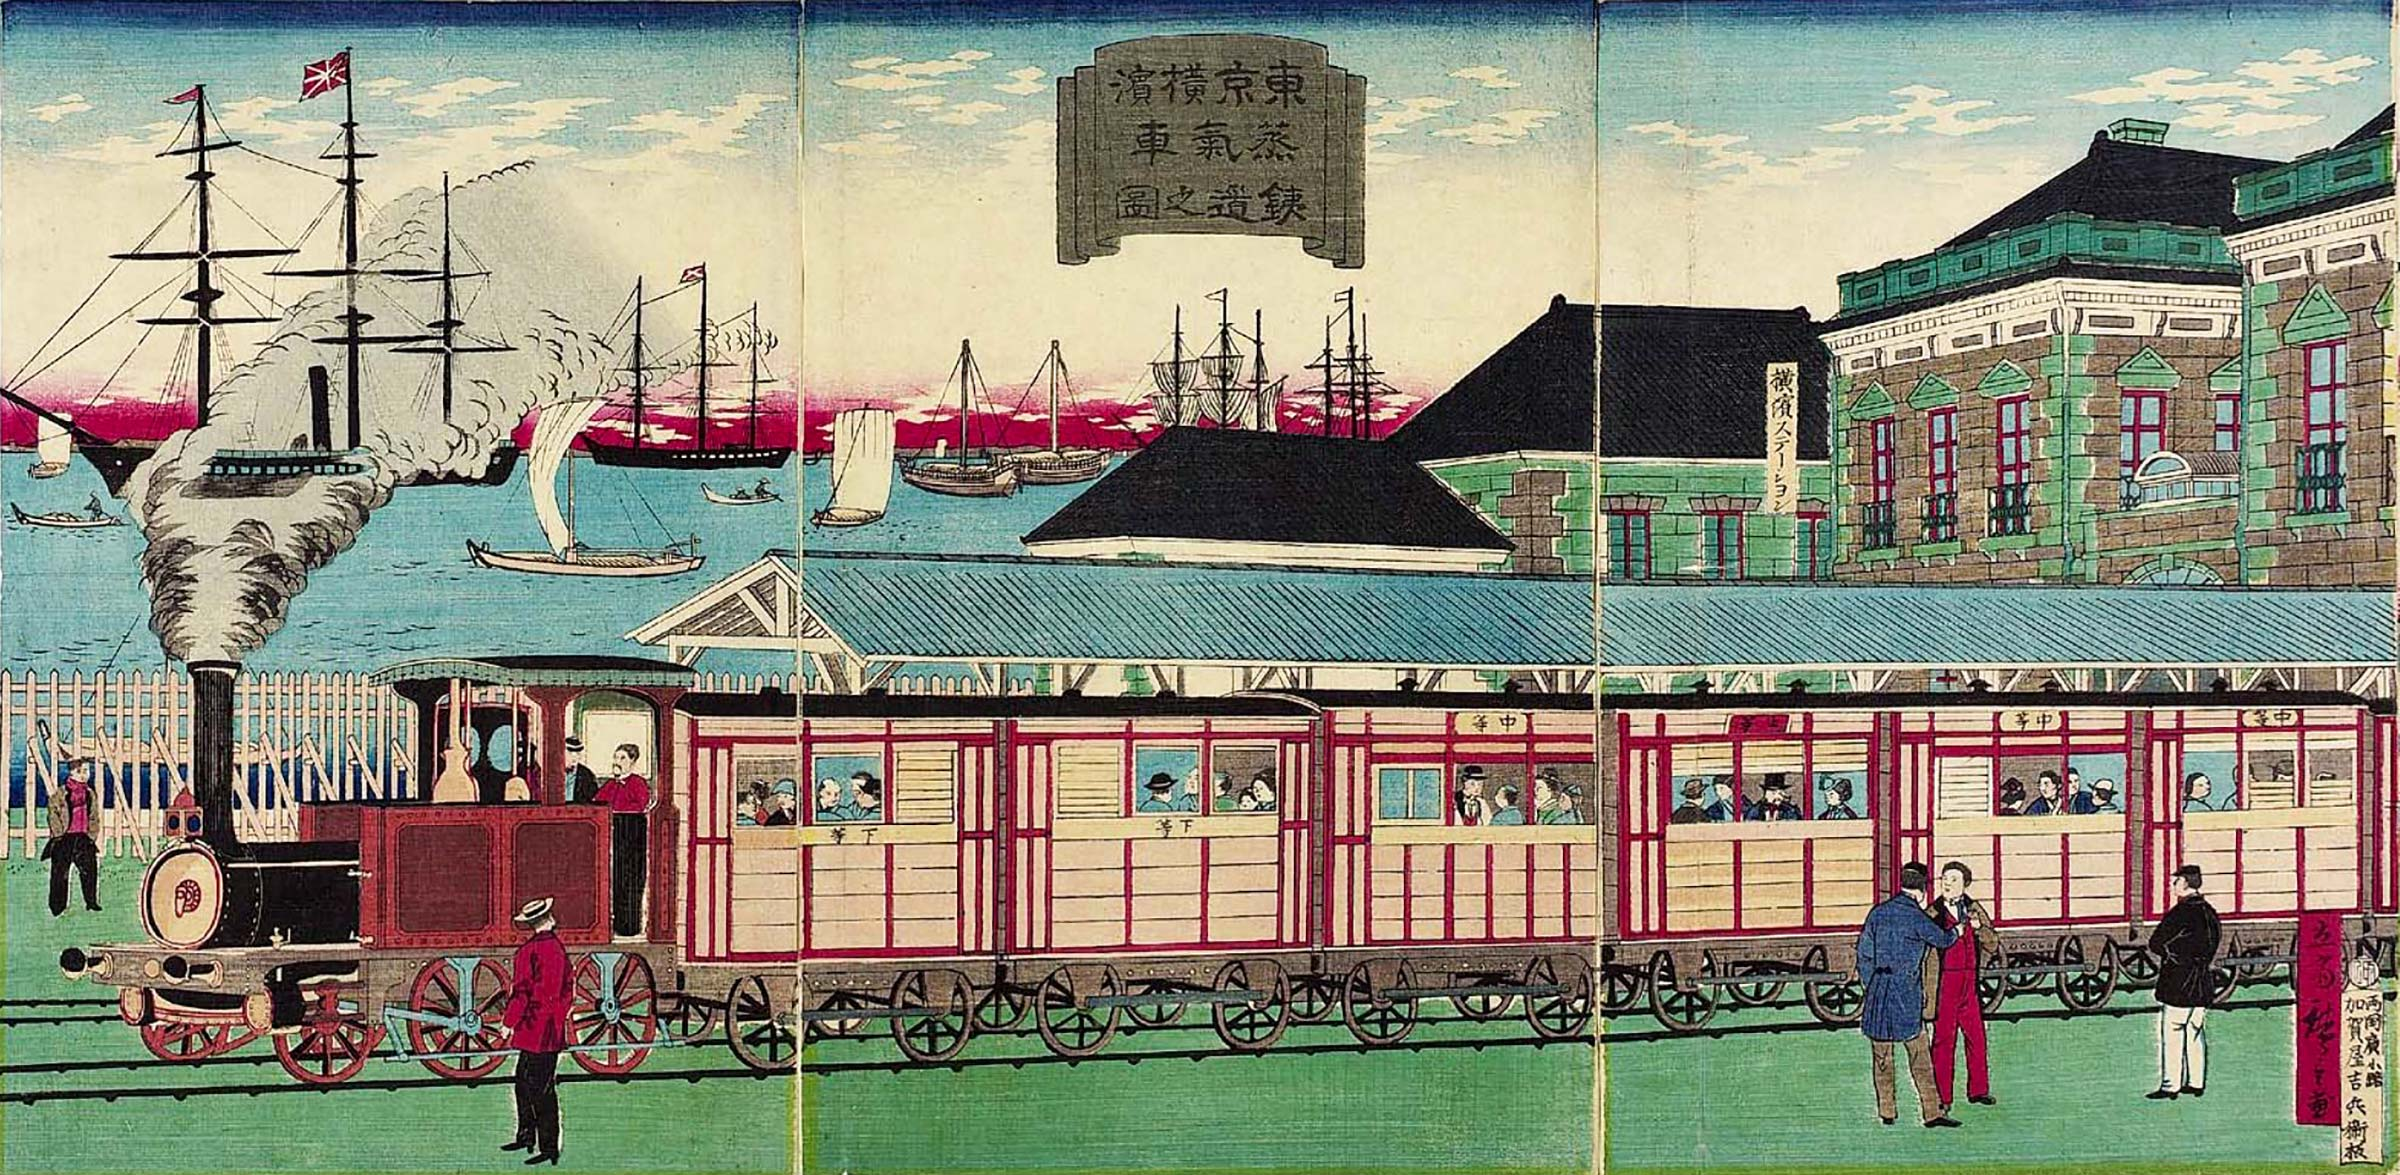 Ukiyoe (woodblock print) of Yokohama Station